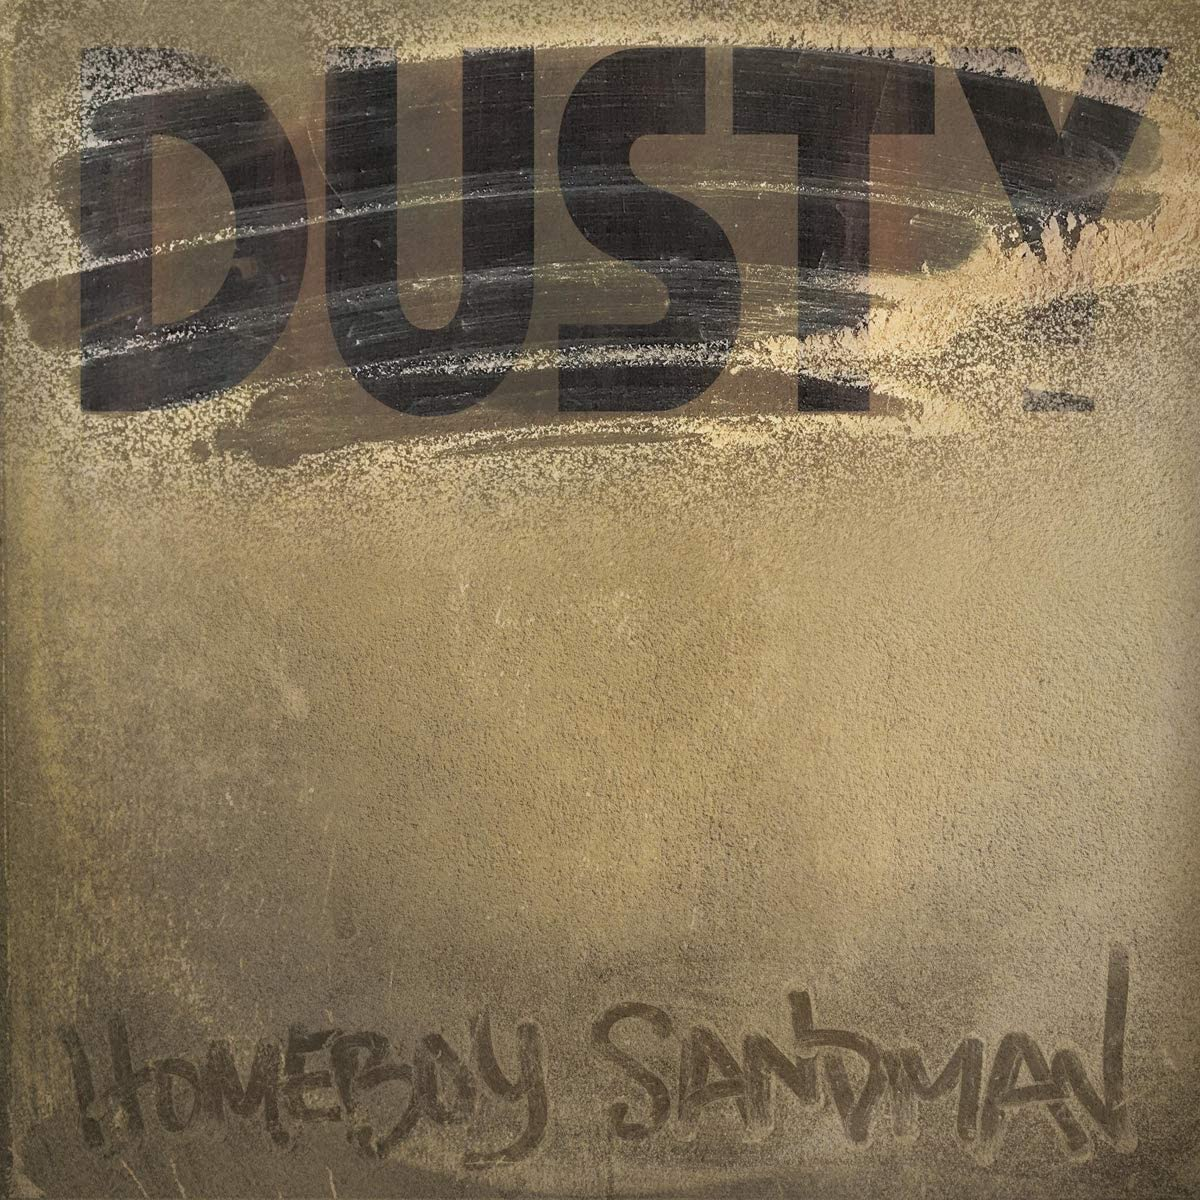 Homeboy Sandman/Dusty [CD]